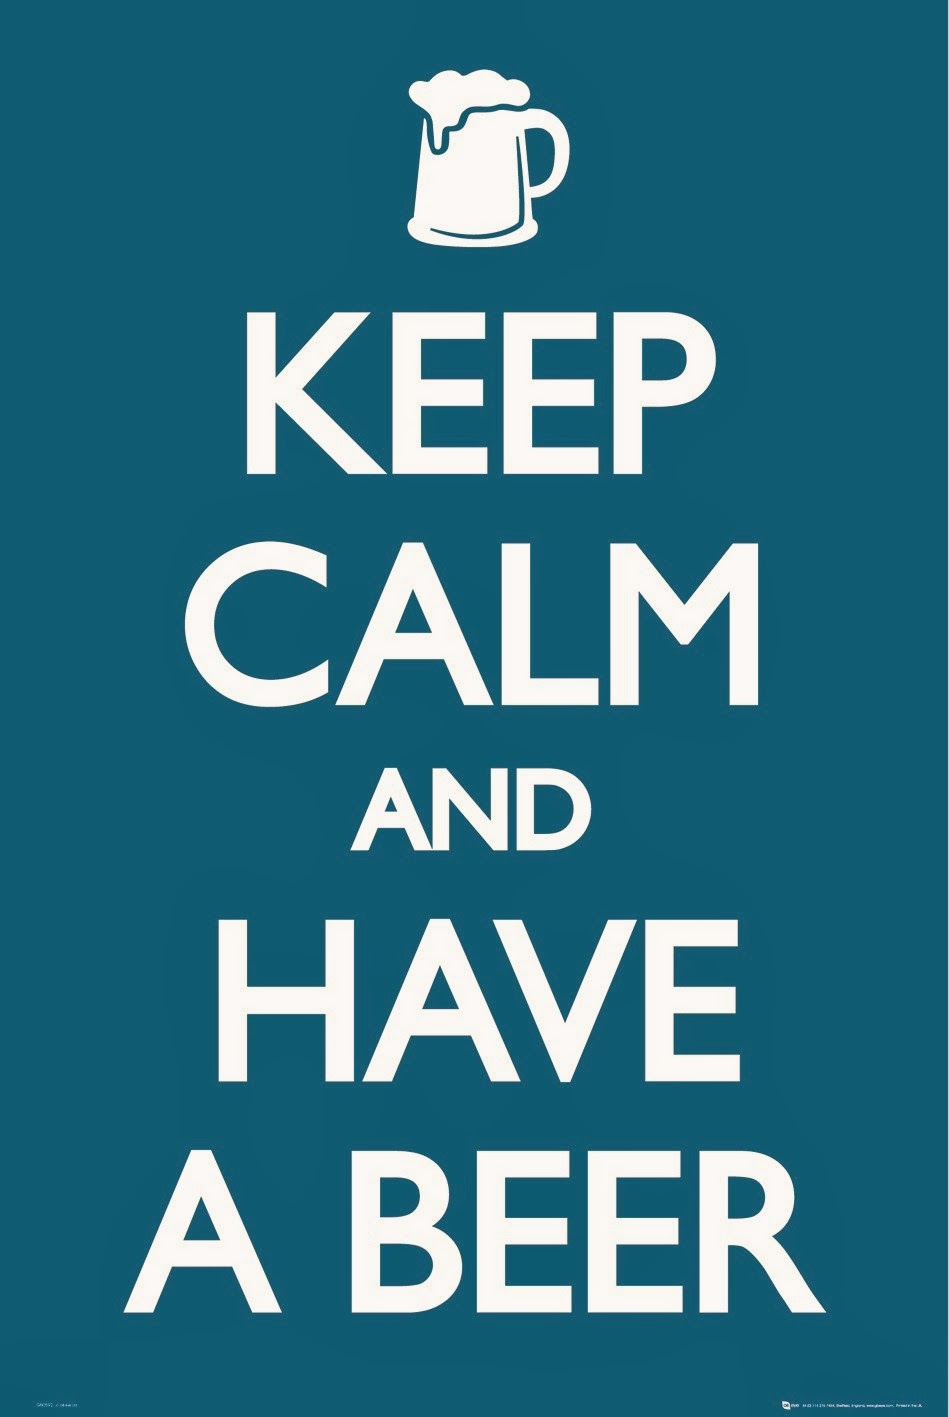 ARchicTECT: [INSPIRATION #3] Keep Calm Quotes I Live By..